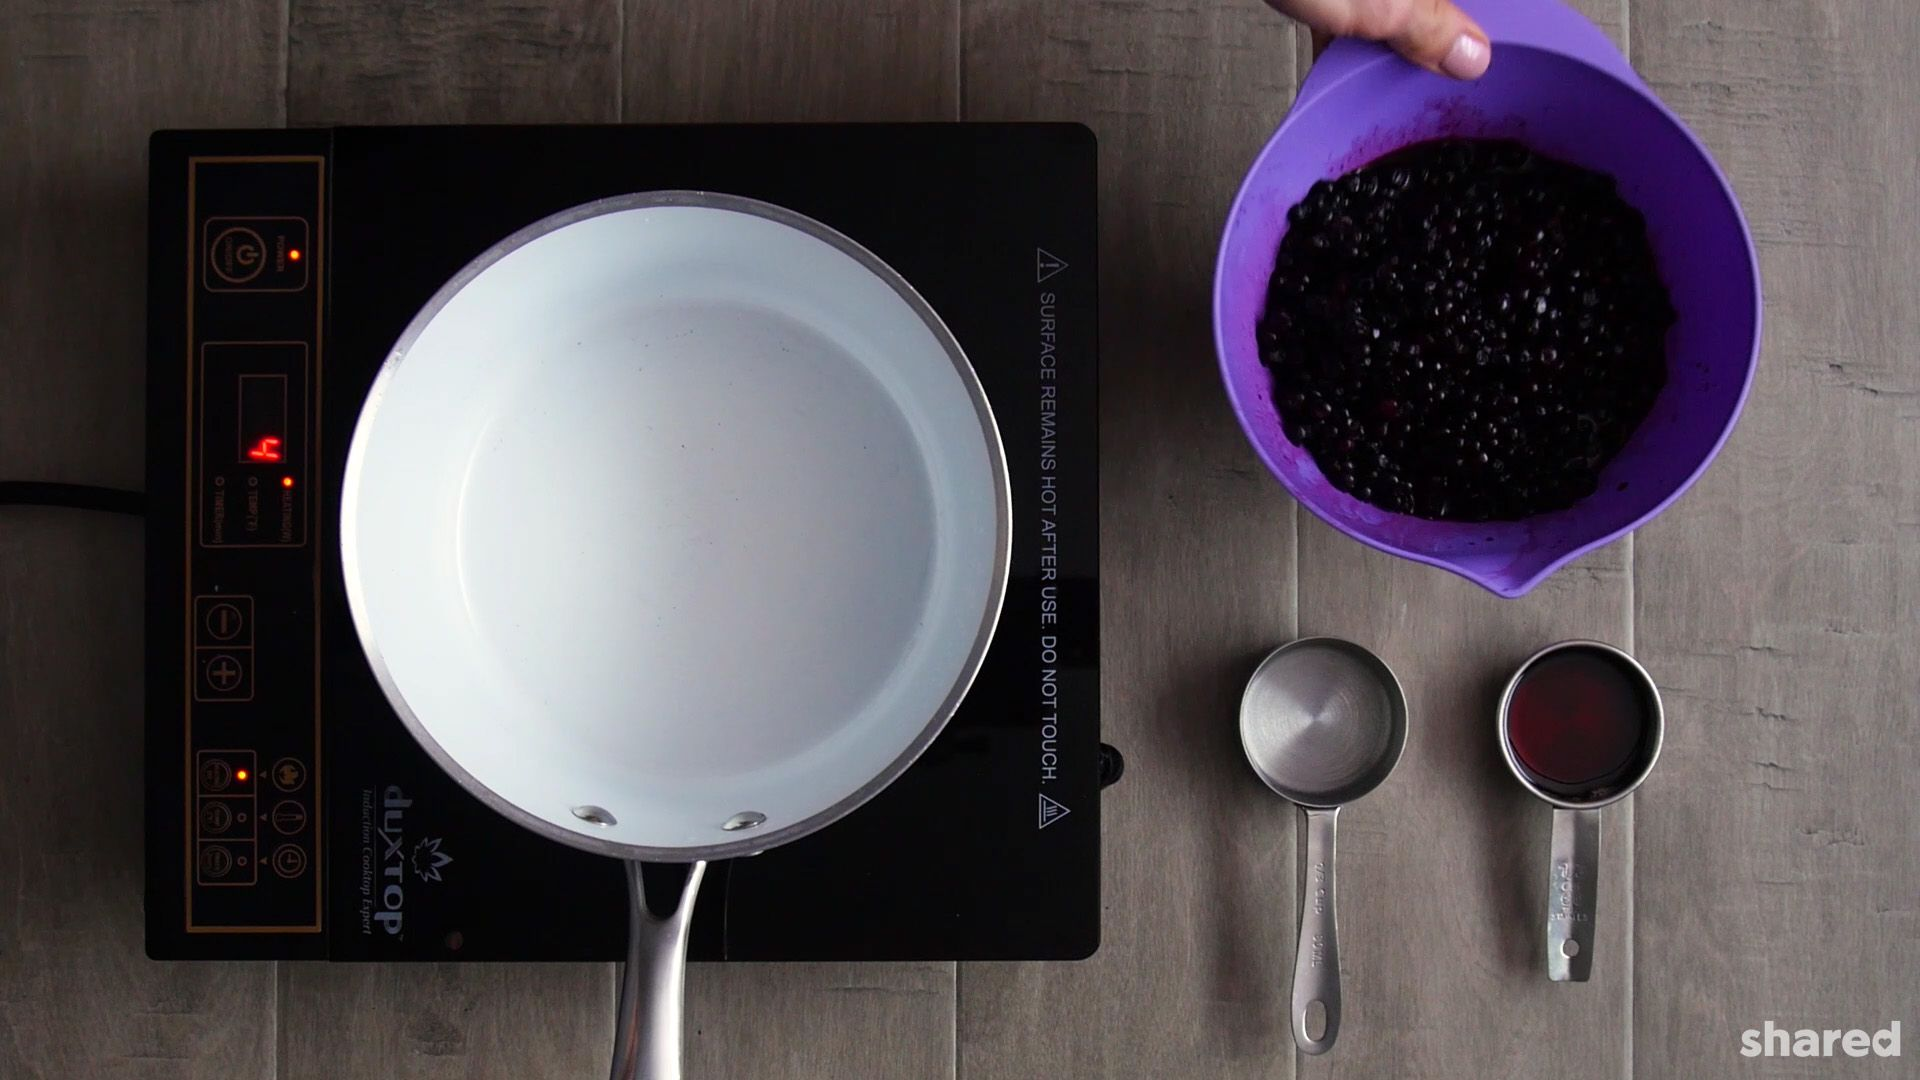 photo may contain a white saucepan on a stove top beside a purple bowl with frozen blueberries and and two stainless measuring cups of water and maple syrup